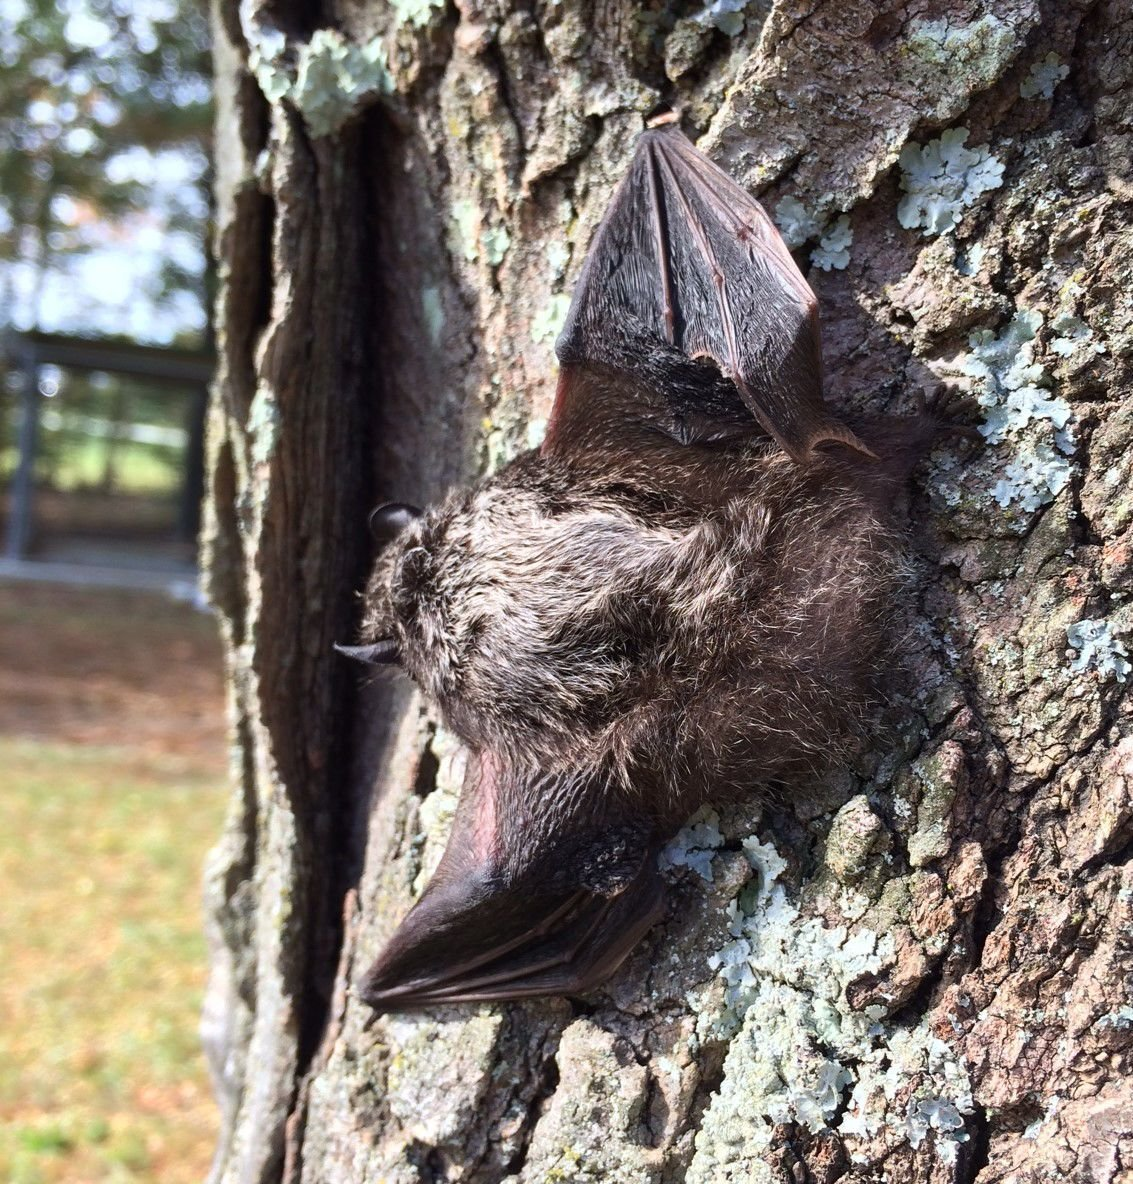 Bats on base: Those flying, fuzzy, beneficial mammals